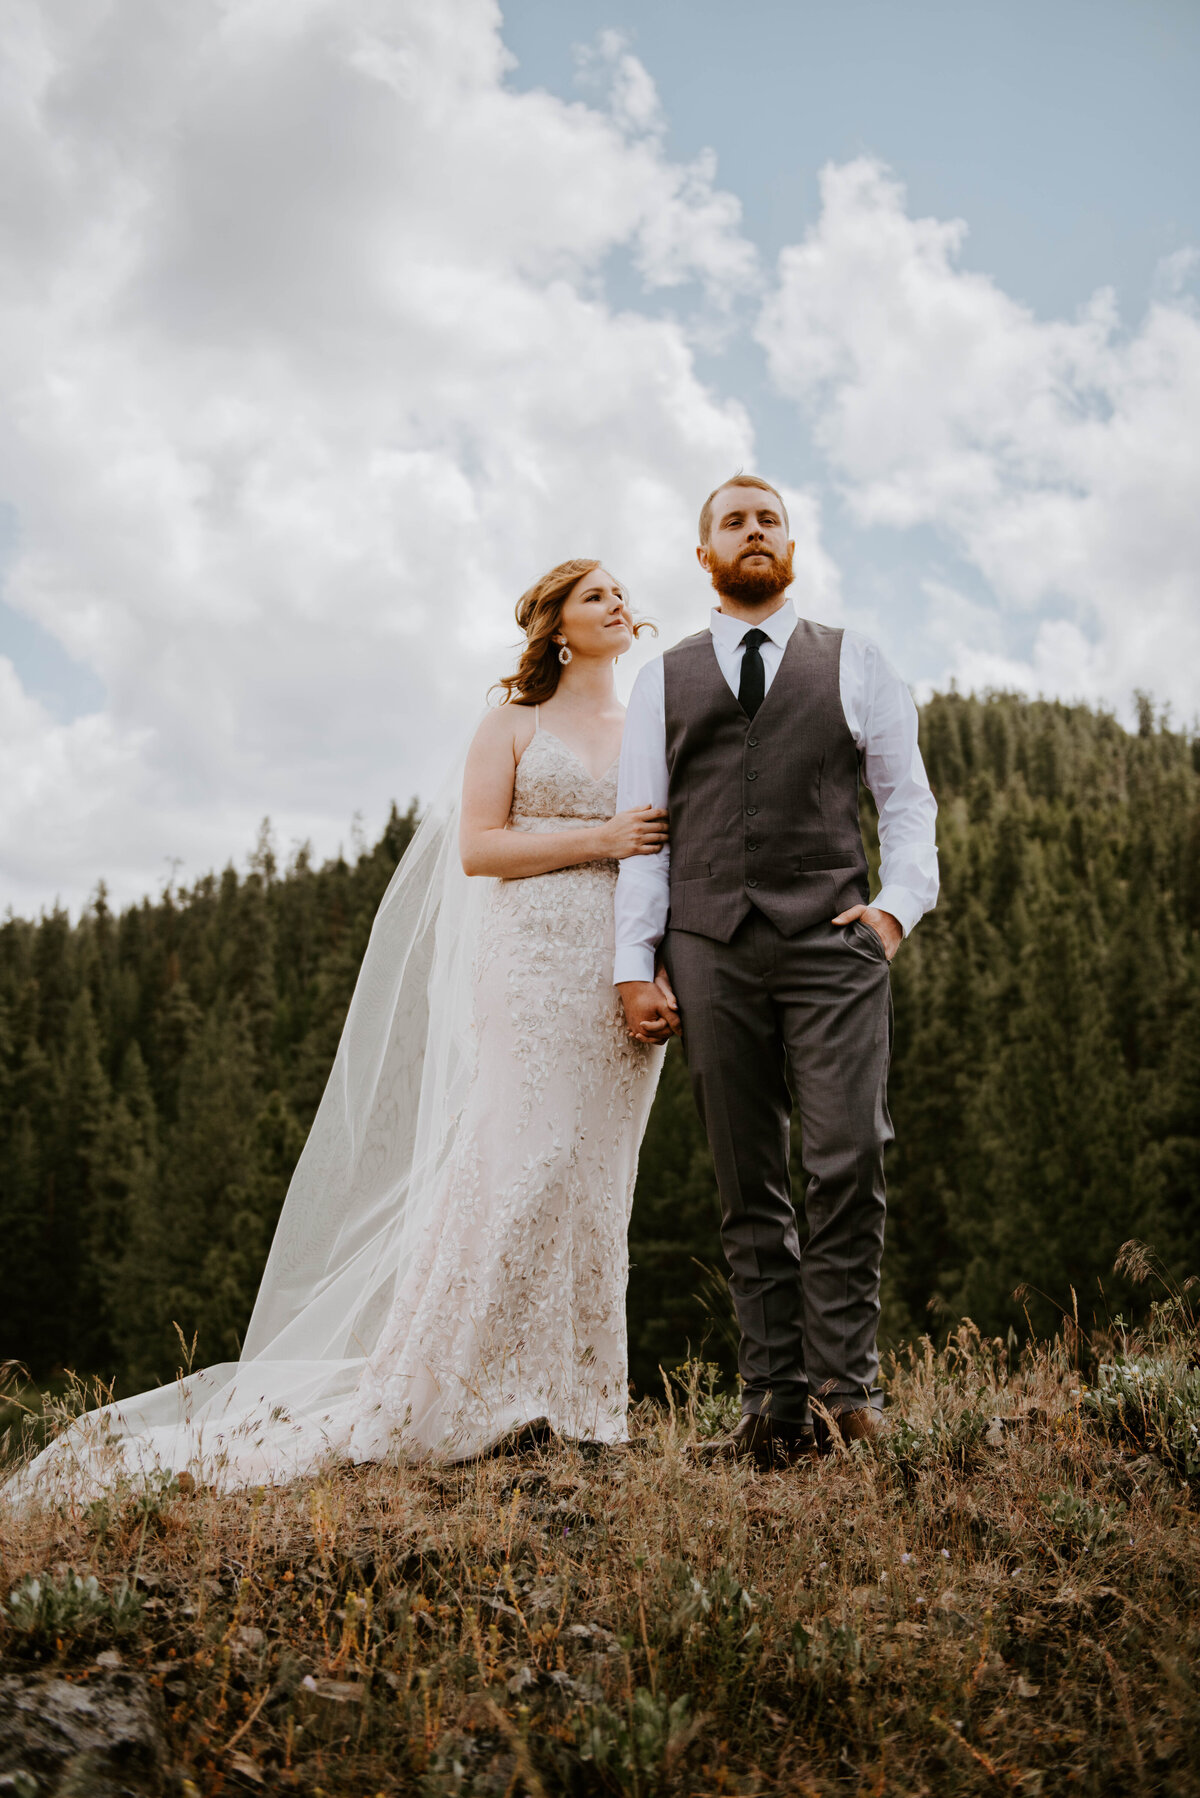 ochoco-forest-central-oregon-elopement-pnw-woods-wedding-covid-bend-photographer-inspiration0942